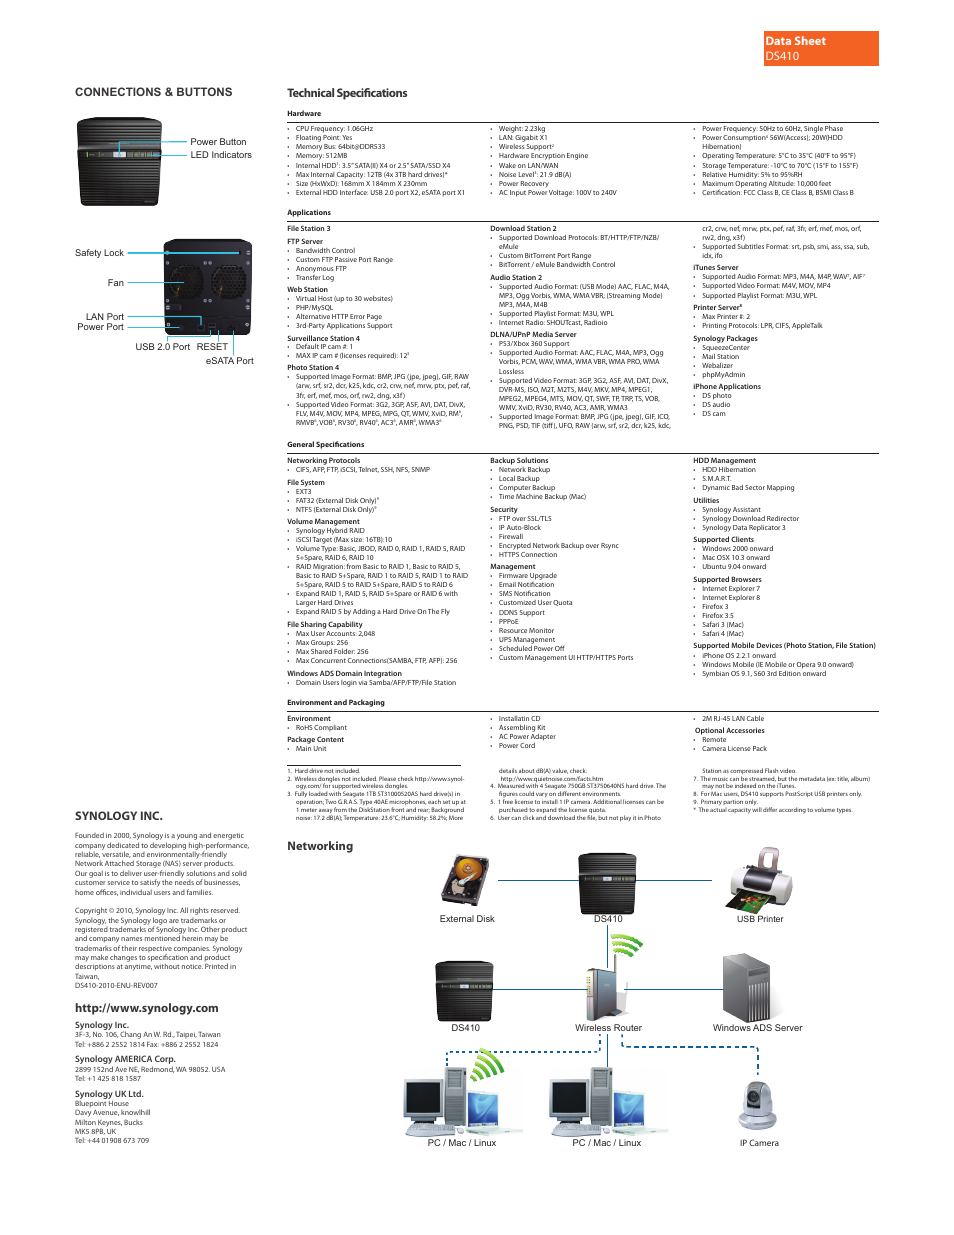 Data sheet ds410, Networking, Synology inc | Synology DS410